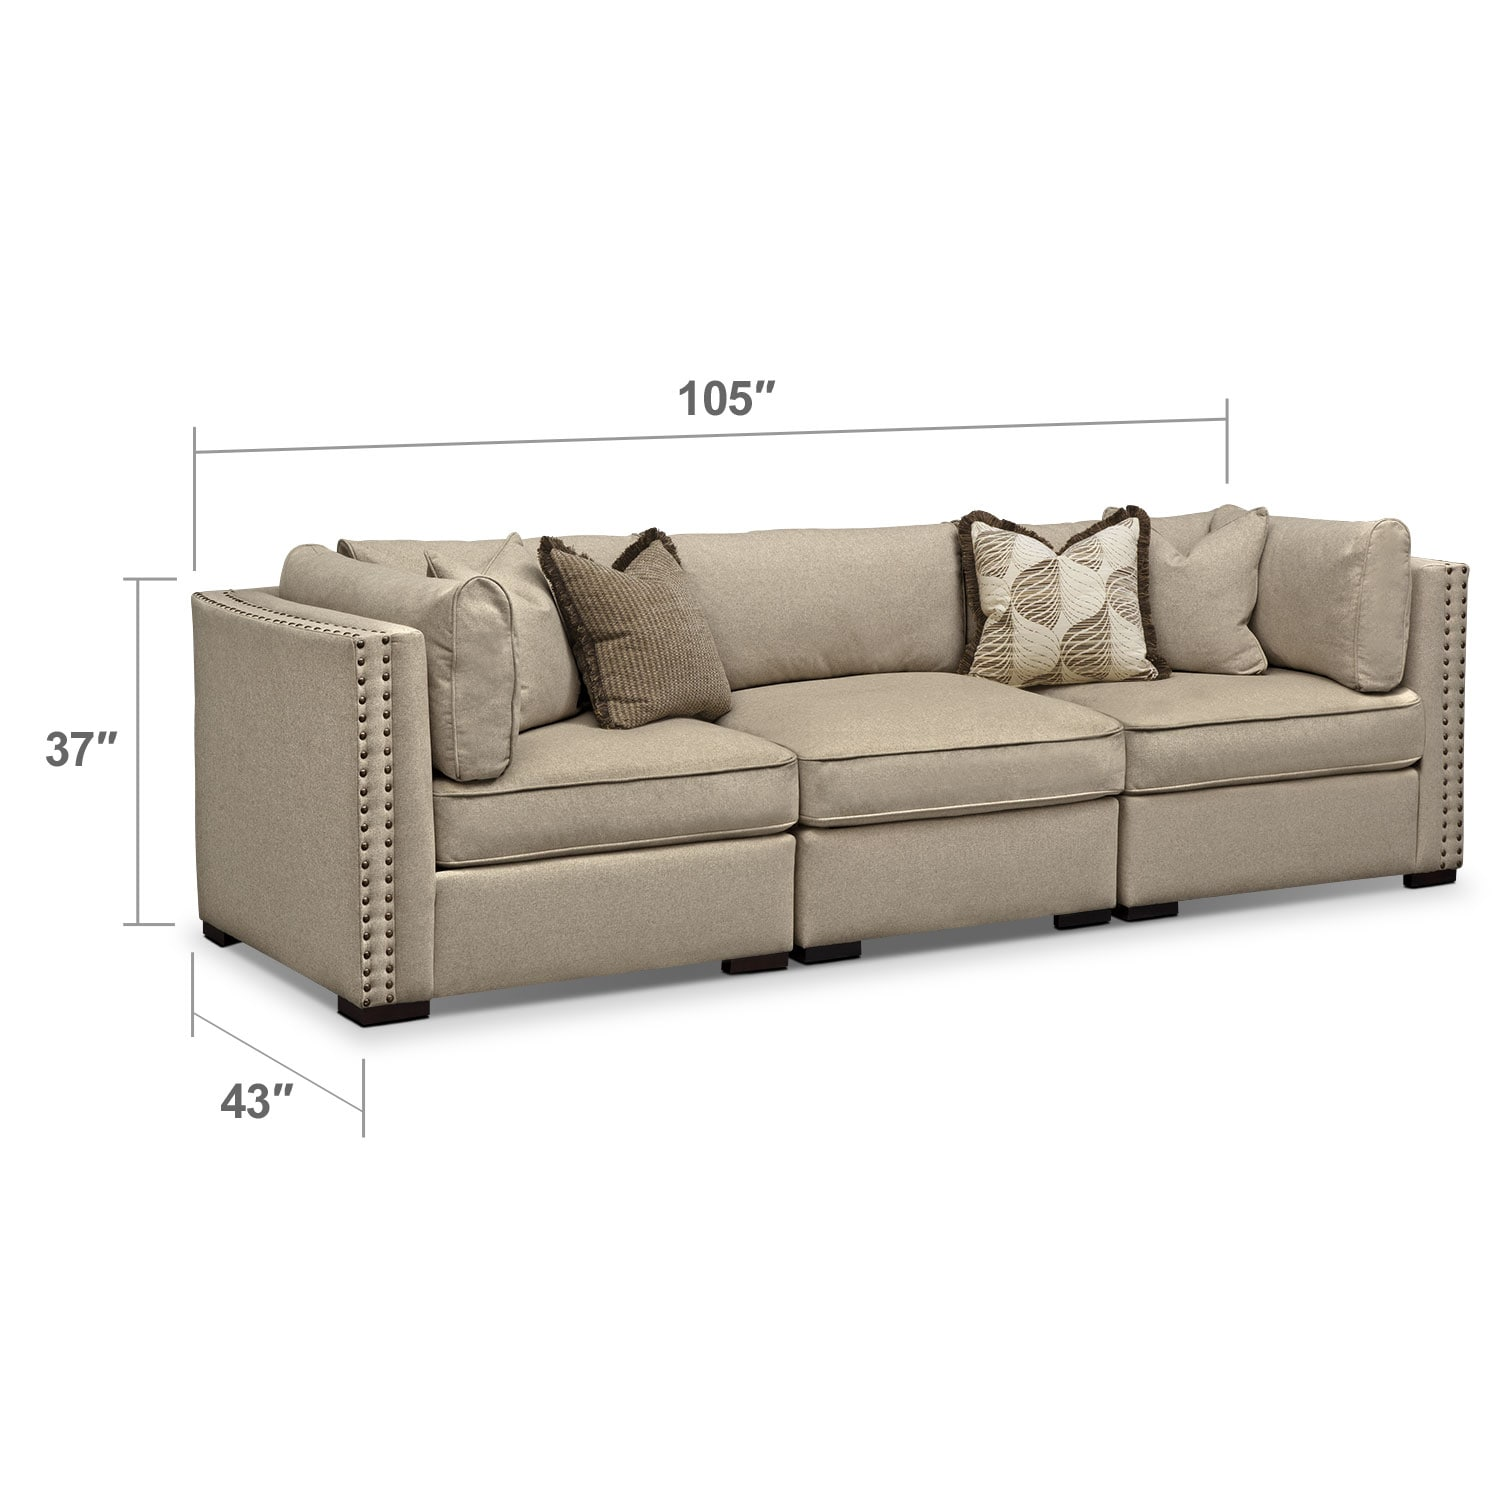 Living Room Furniture - Athens 3 Pc. Sectional